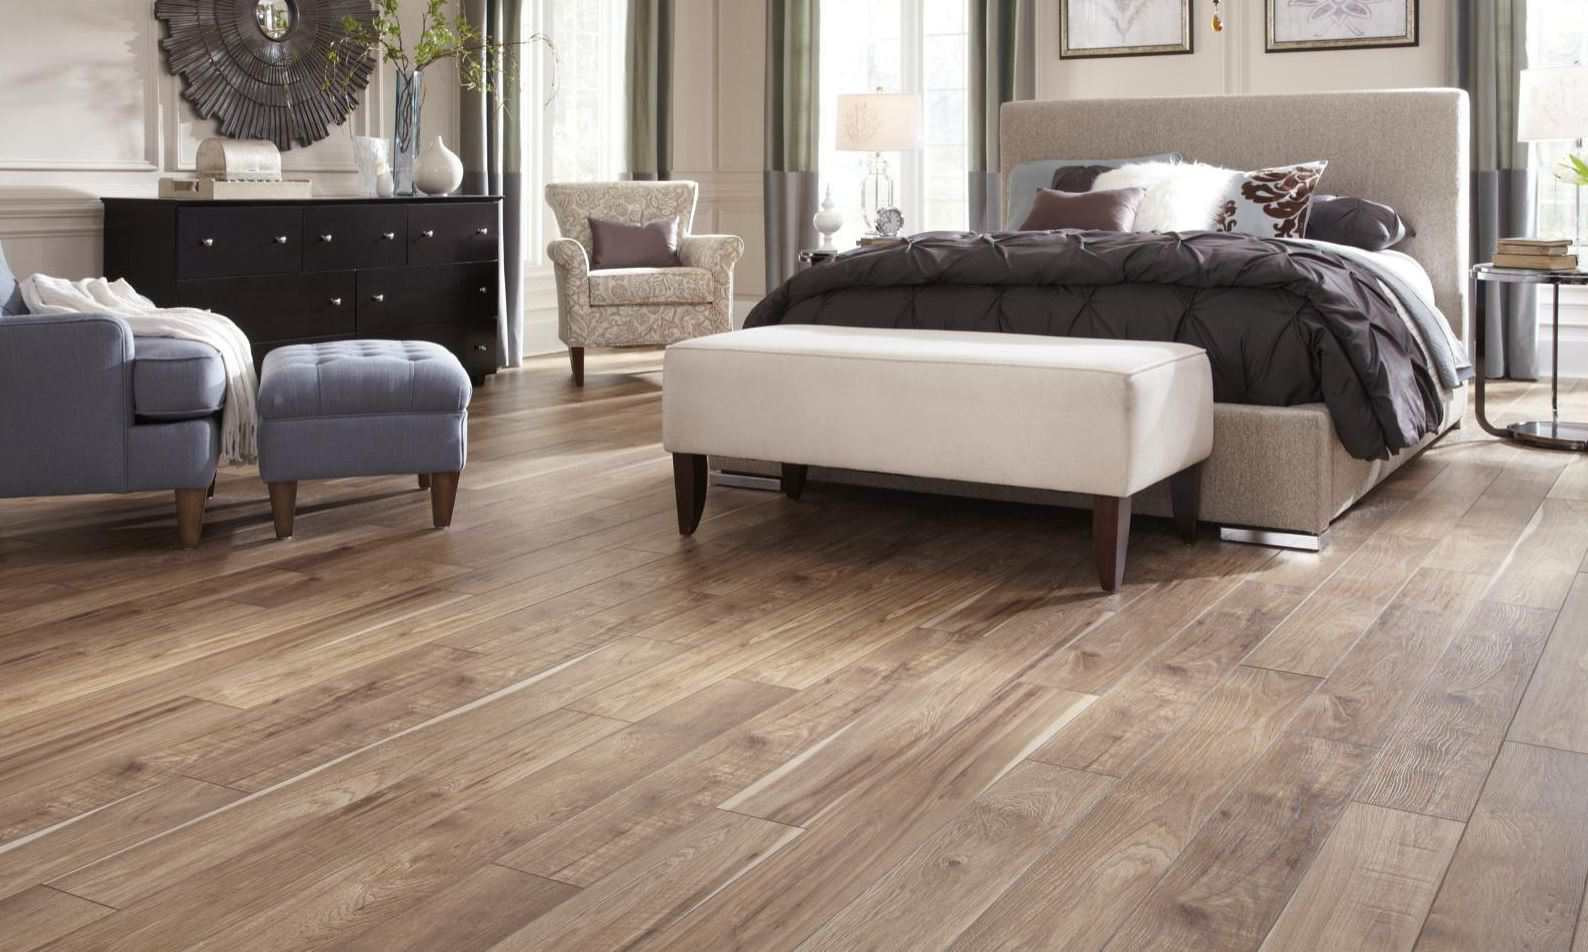 orange glo hardwood floor care kit of luxury vinyl plank flooring that looks like wood in mannington adura luxury vinyl plank flooring 57aa7d065f9b58974a2be49e jpg